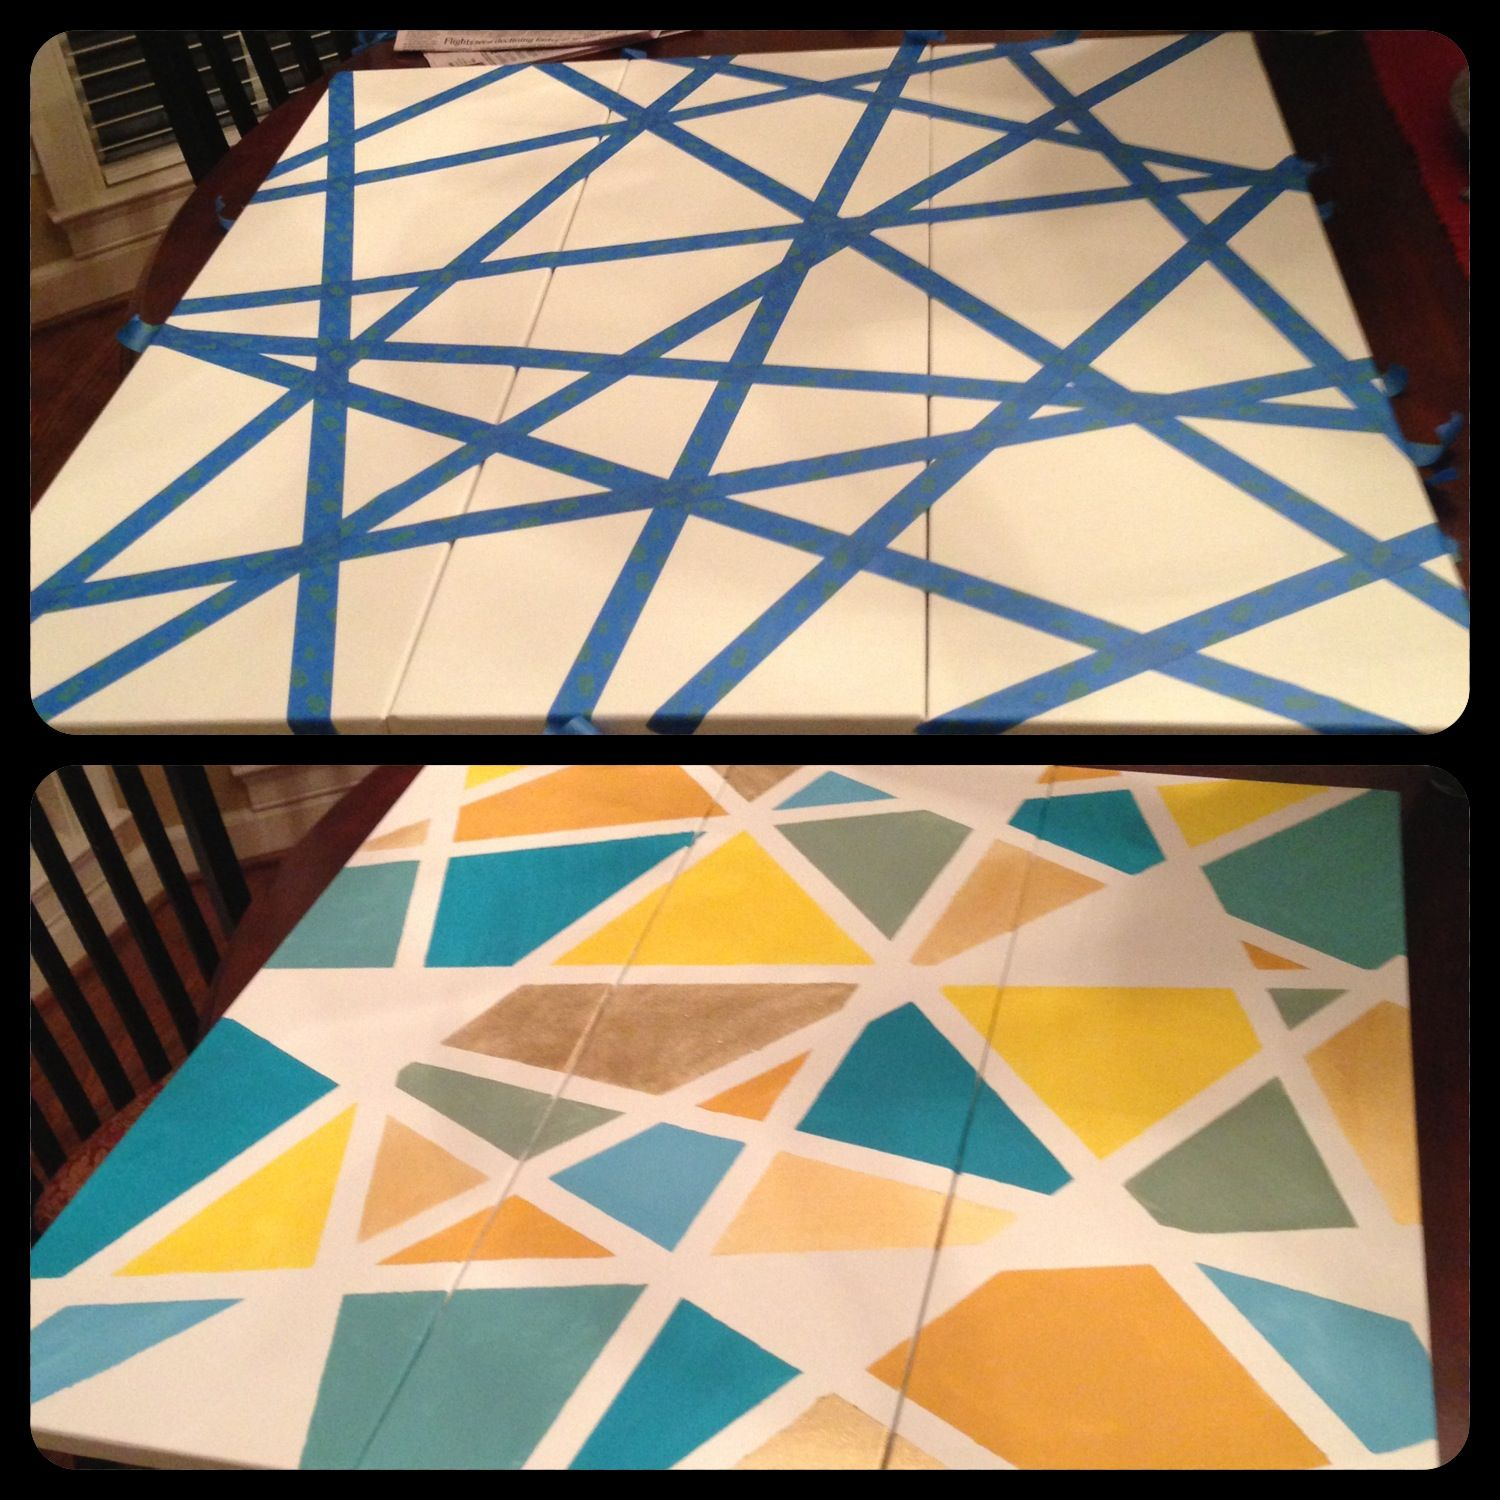 Diy Modern Mosaic Painting Super Simple Use Painter S Tape And Go Crazy 3 Separate Panels But Taped Them As One